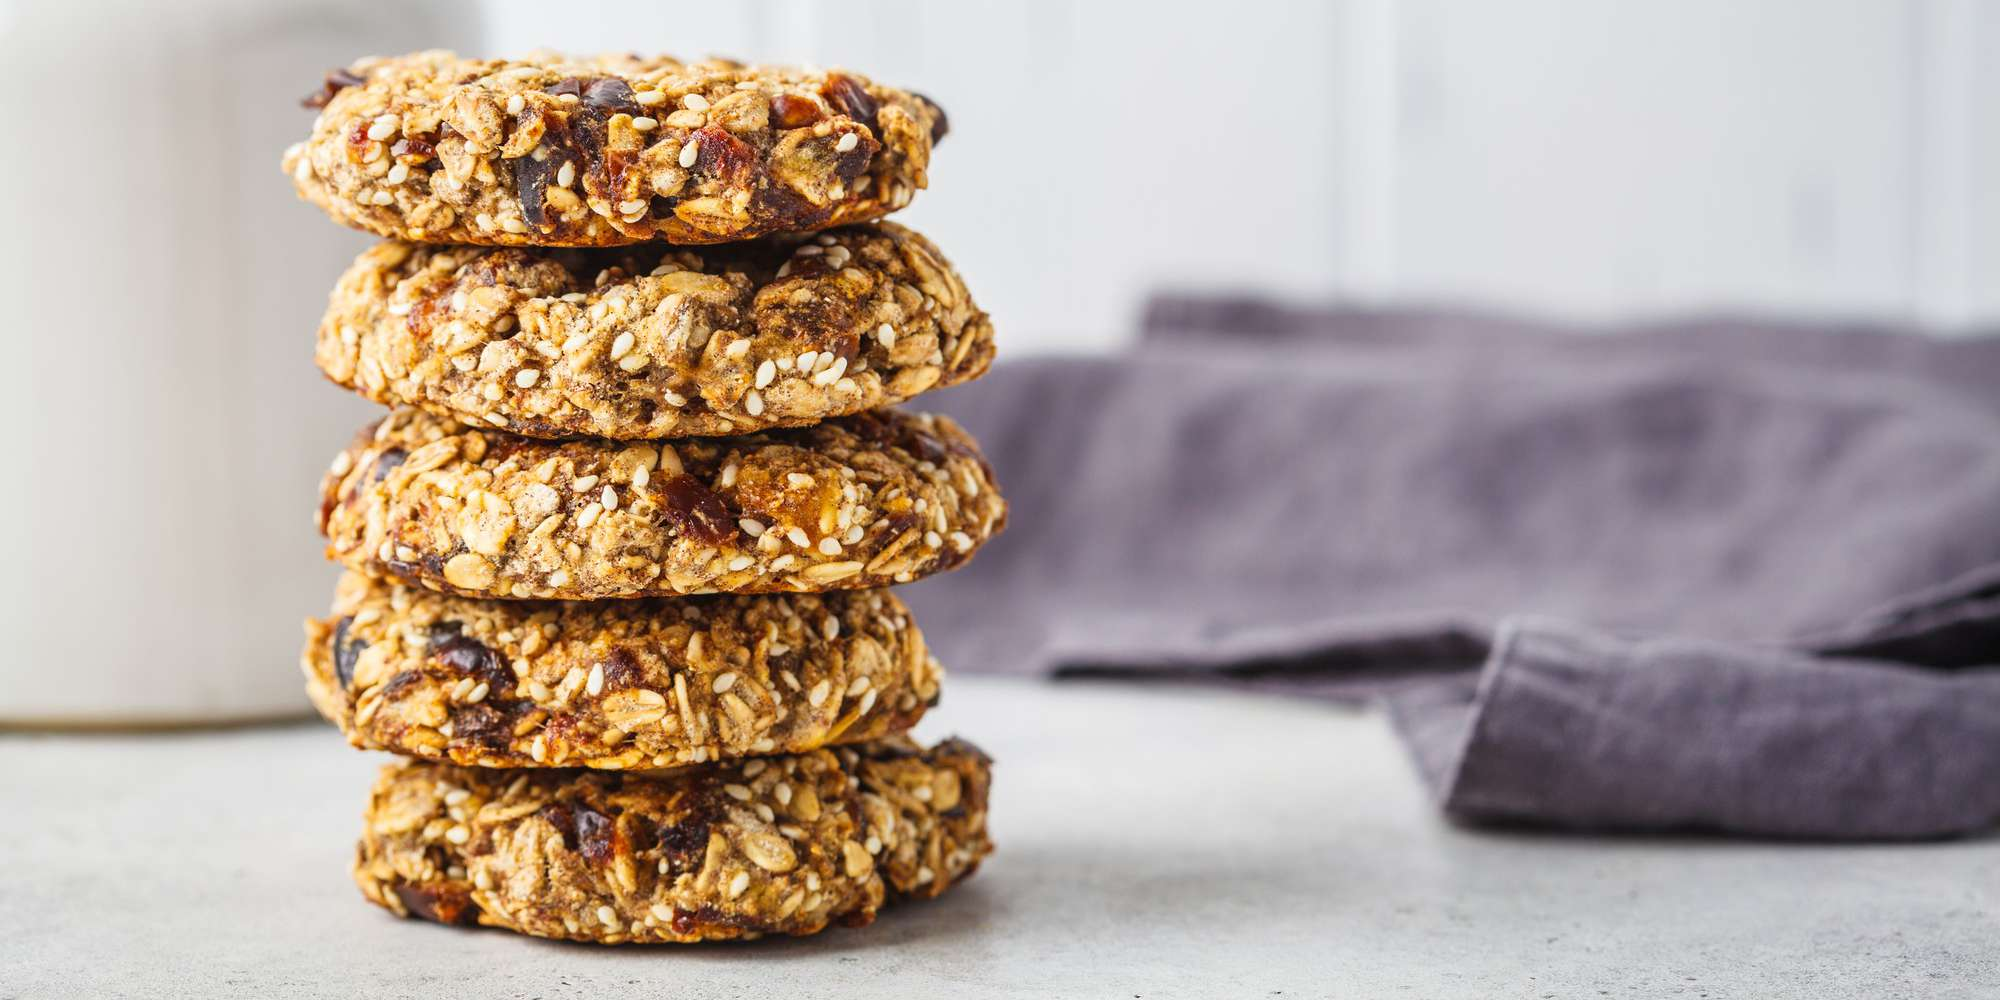 Banana Date and Oat Cookies